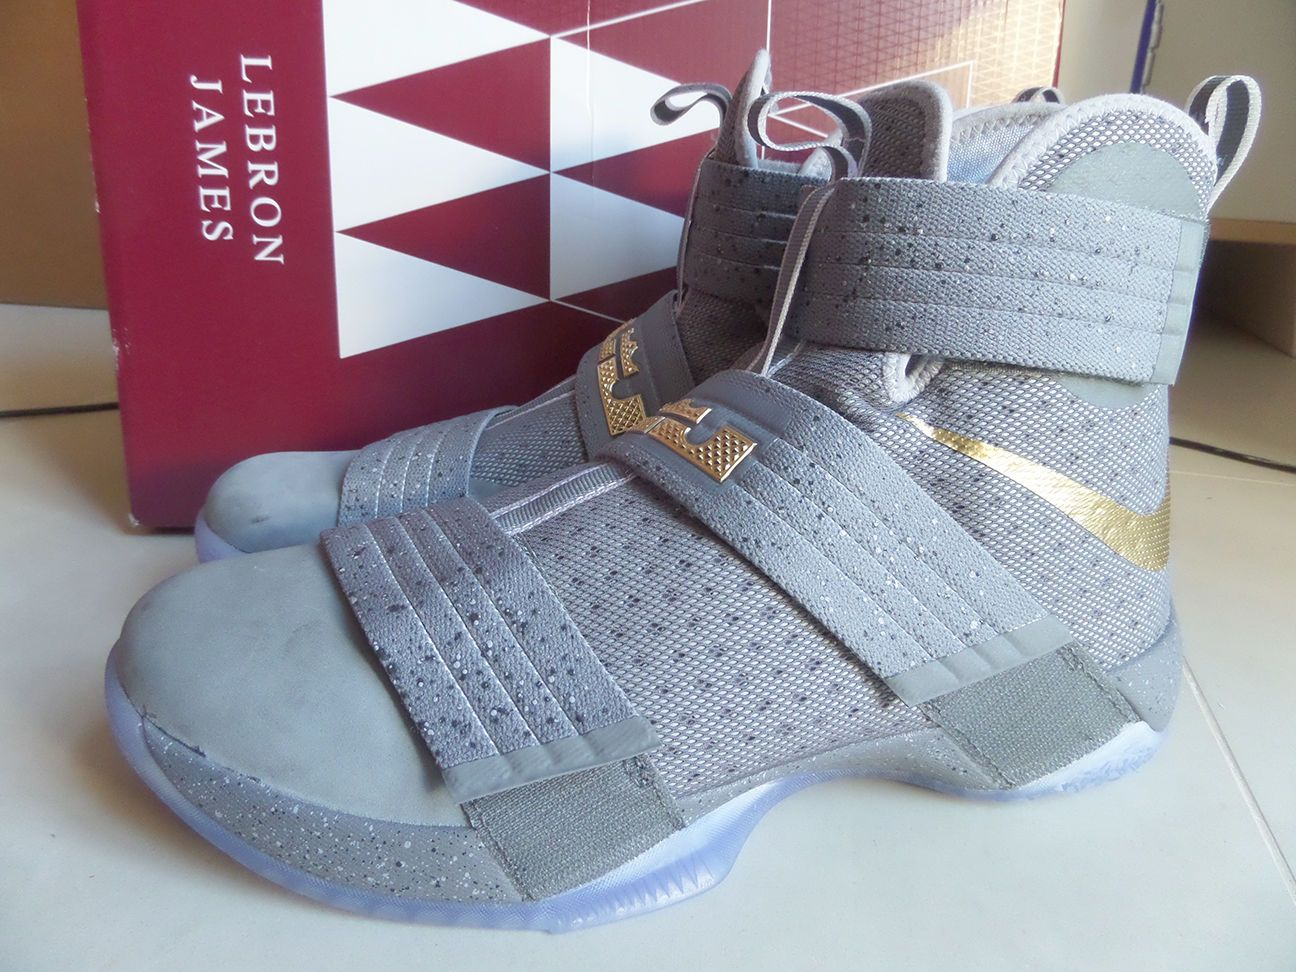 4471f55477d 100% Auth Nike LeBron Soldier 10 SFG PE Battle Grey Gold sz 10.5  899620-010